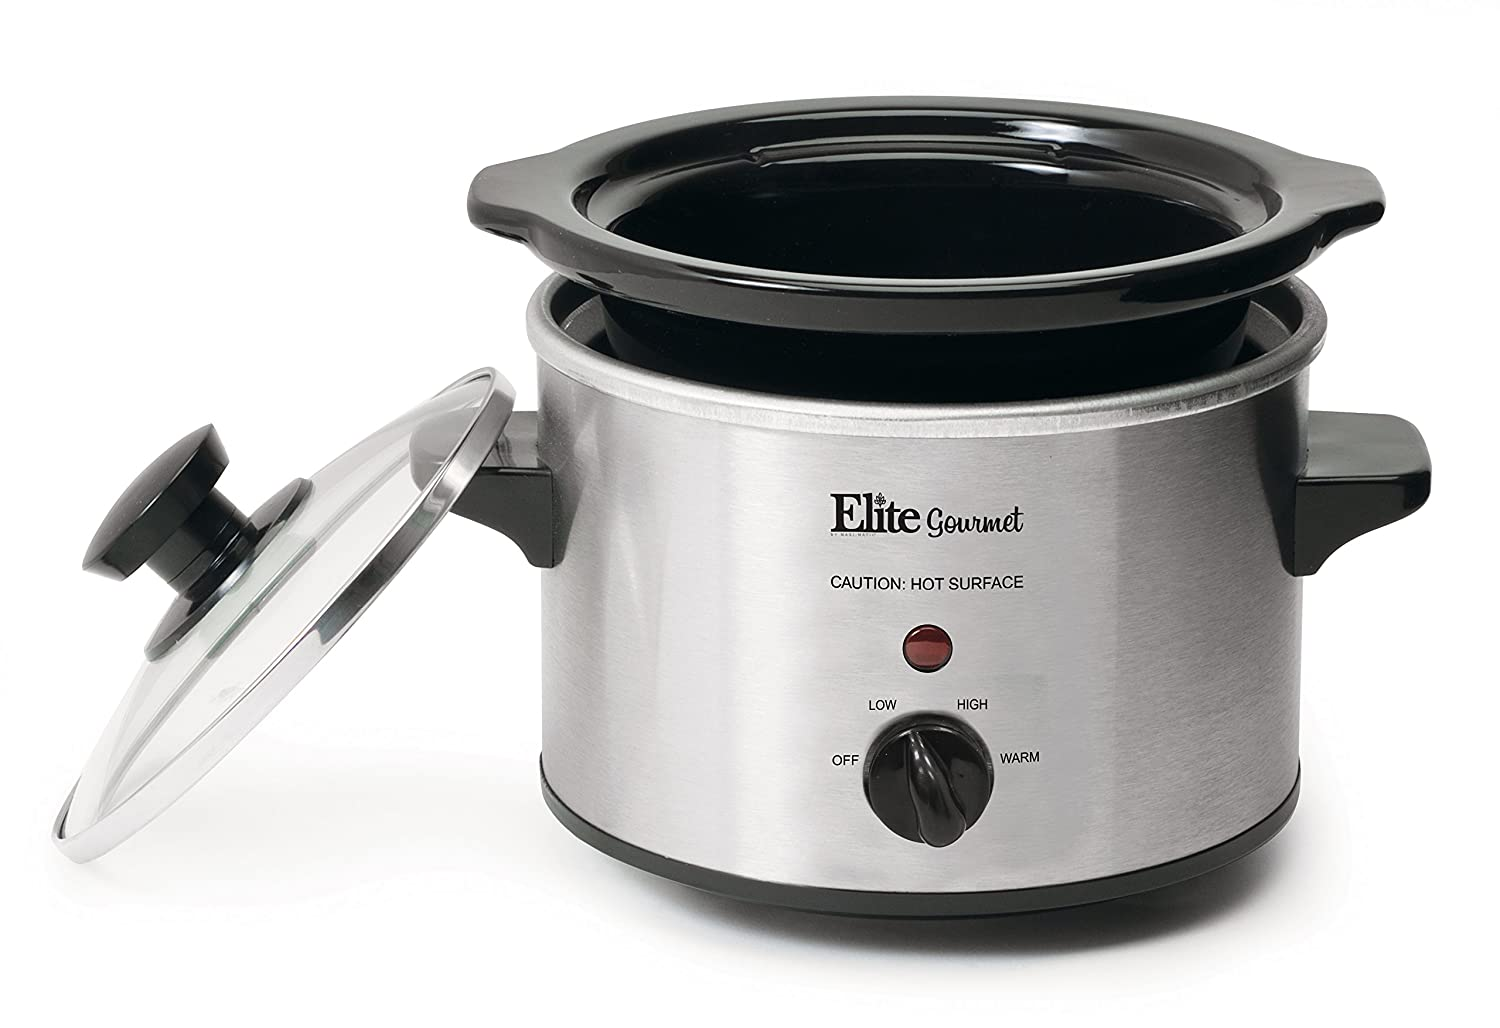 81 FBBNtiXL._SL1500_ amazon com elite gourmet mst 250xs 1 5 quart slow cooker, silver Crock Pot Manual PDF at crackthecode.co